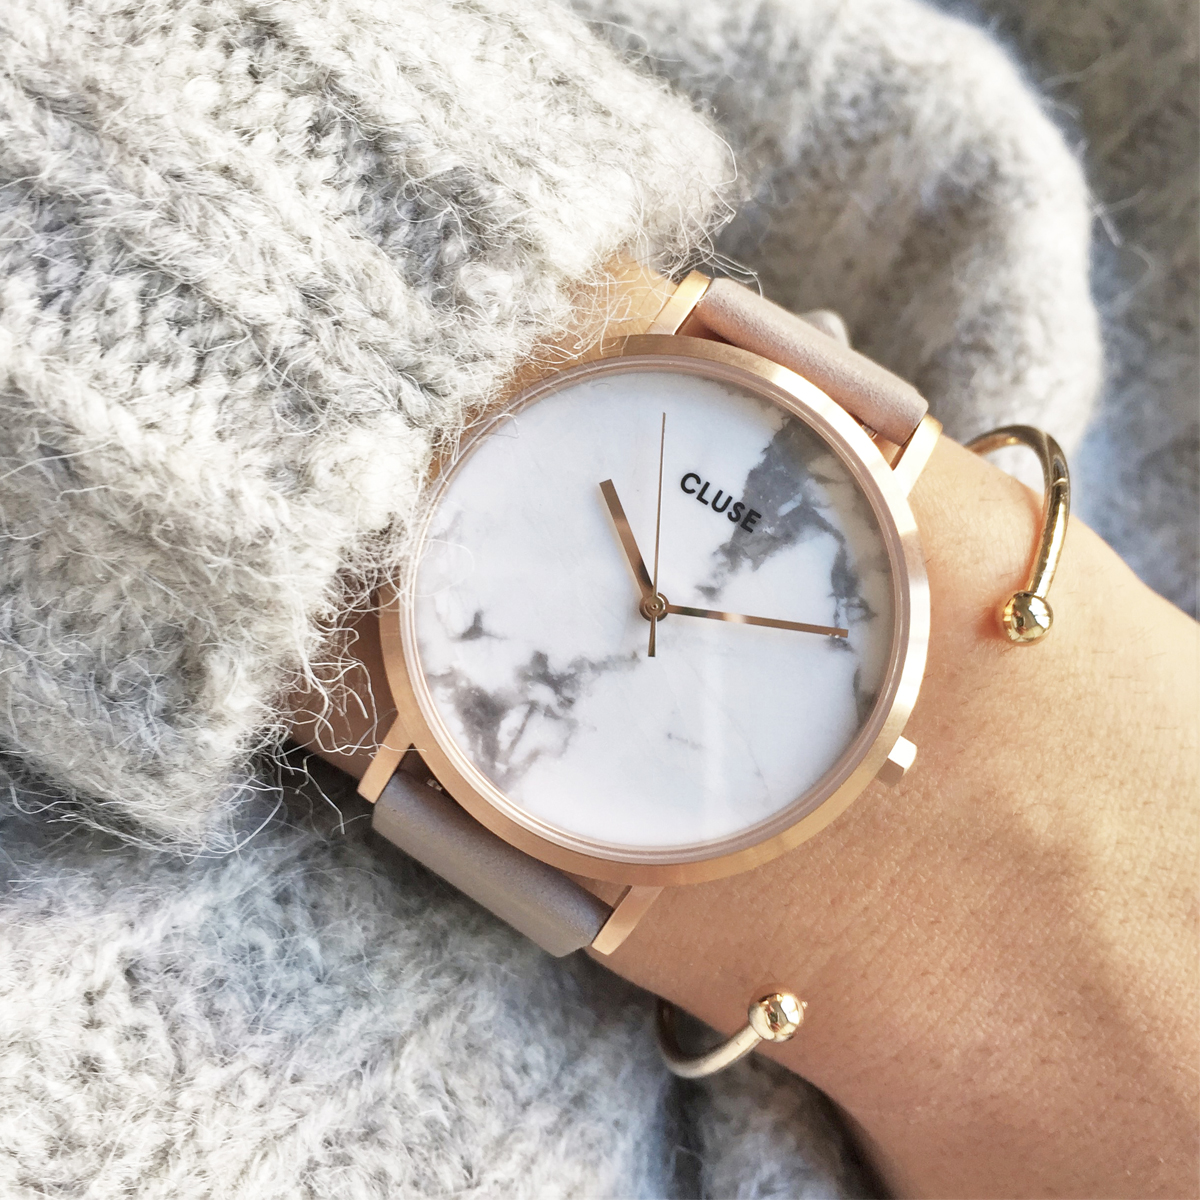 La Roche in rose gold with white marble face.